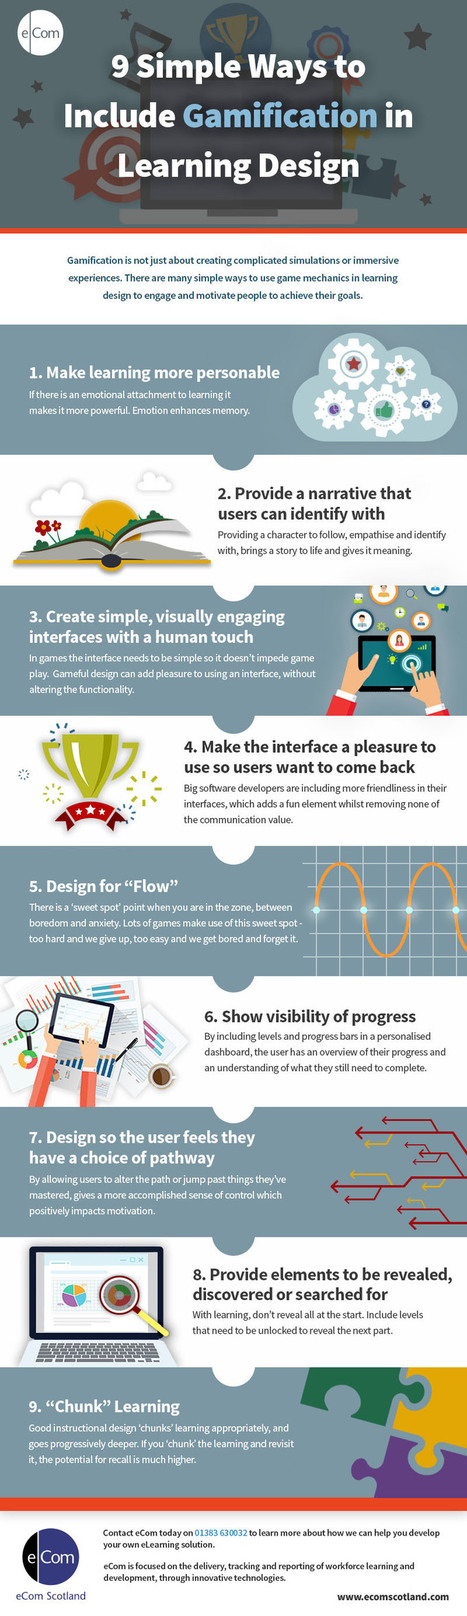 9 Ways to Include Gamification in Learning Design Infographic - e-Learning Infographics | cognitivisme, réflexions pédagogiques | Scoop.it